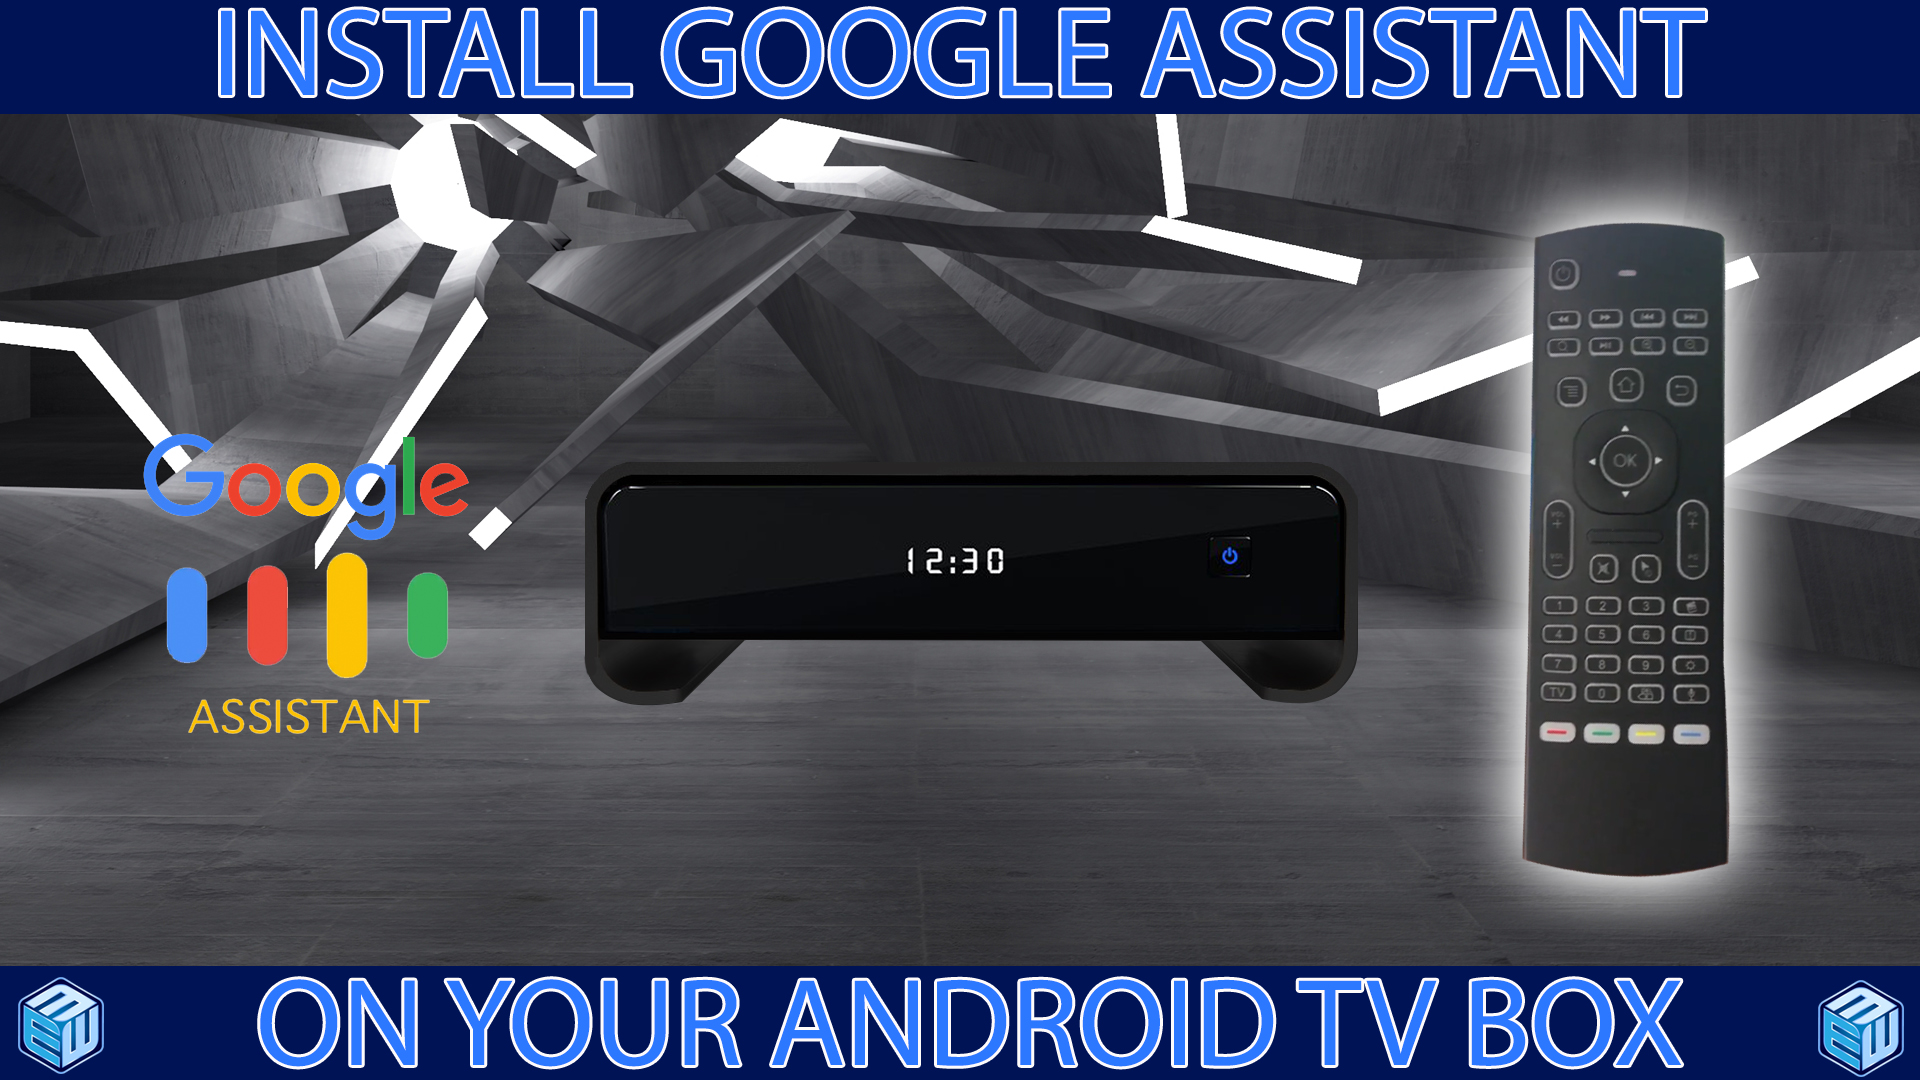 How to download and install Google Assistant apk onto an Android TV box